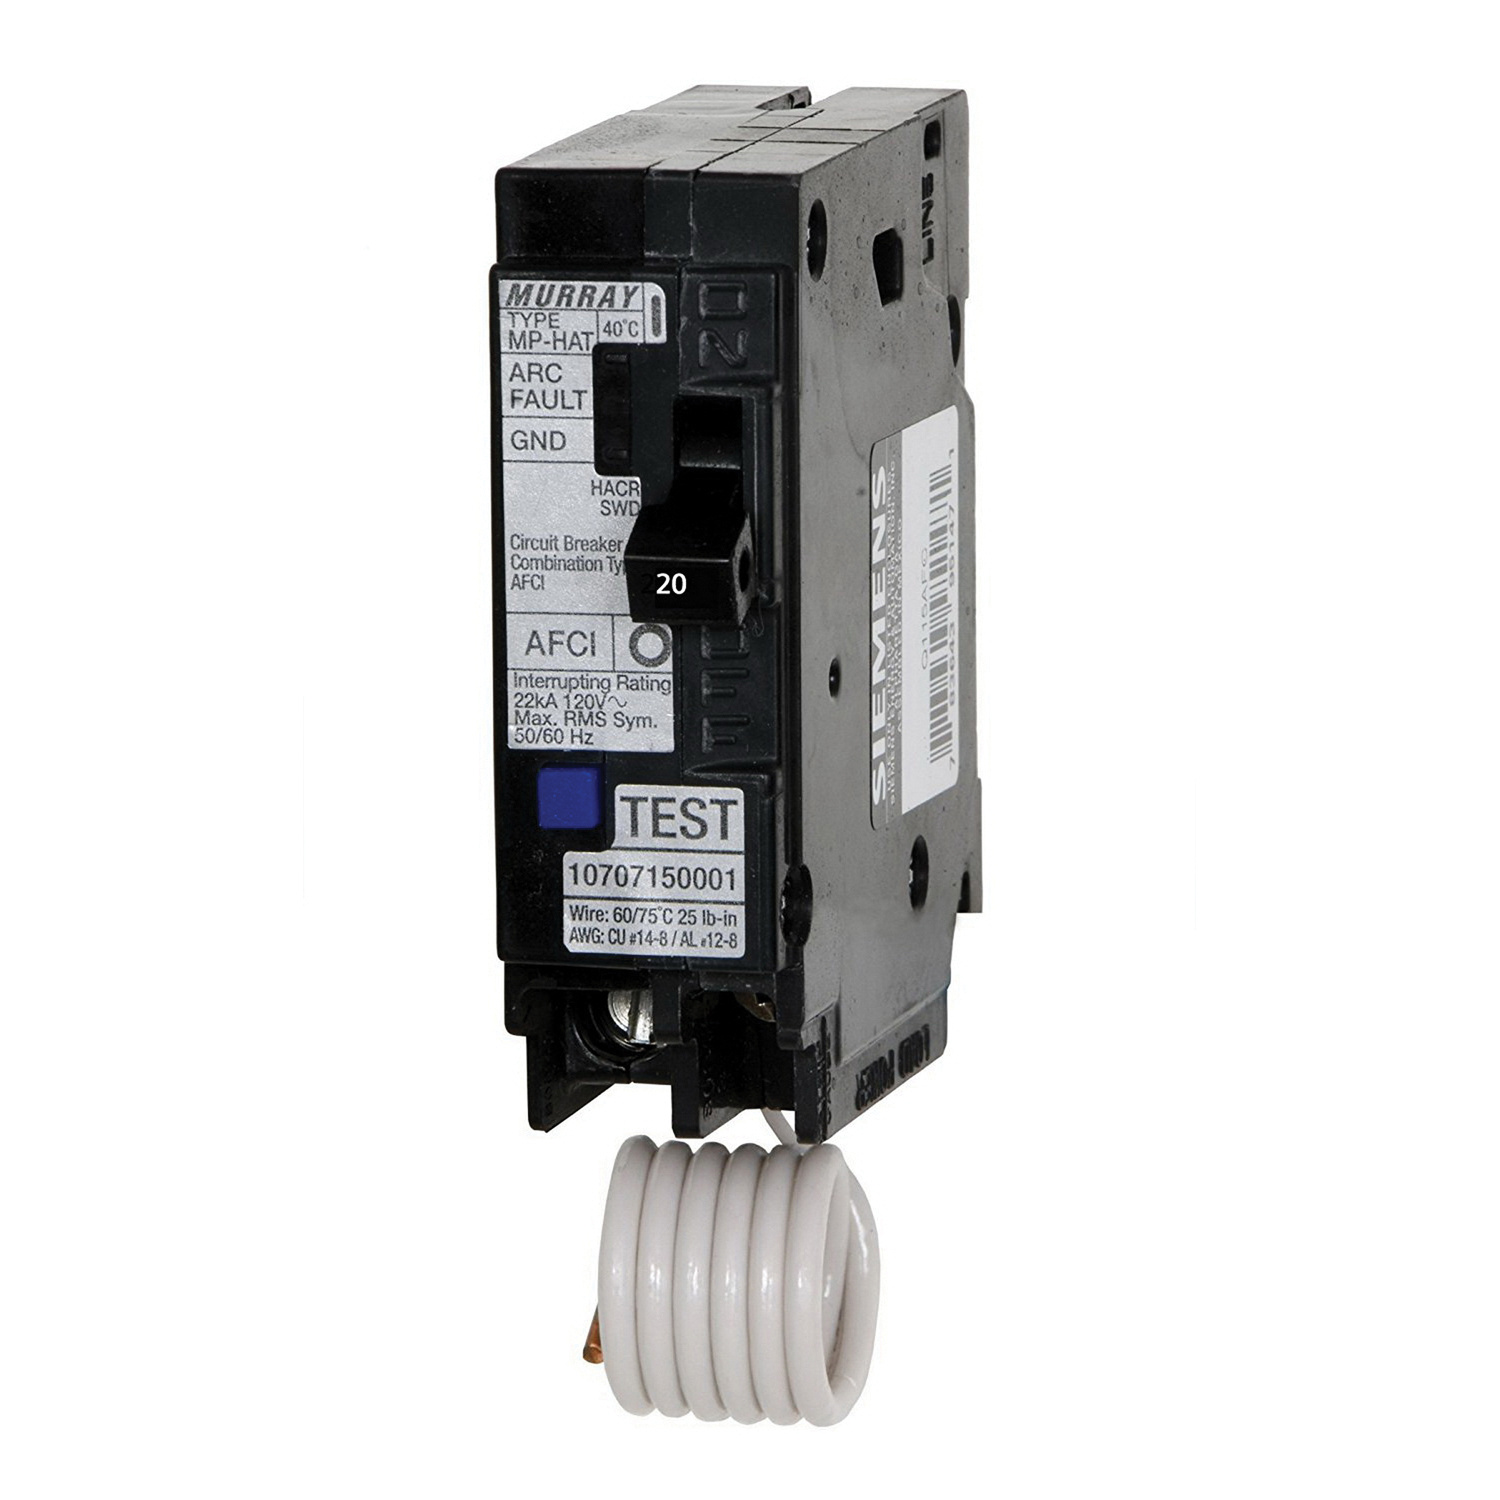 Murray MP120AF I-Line Plug-In Mount Type MP-T Arc Fault